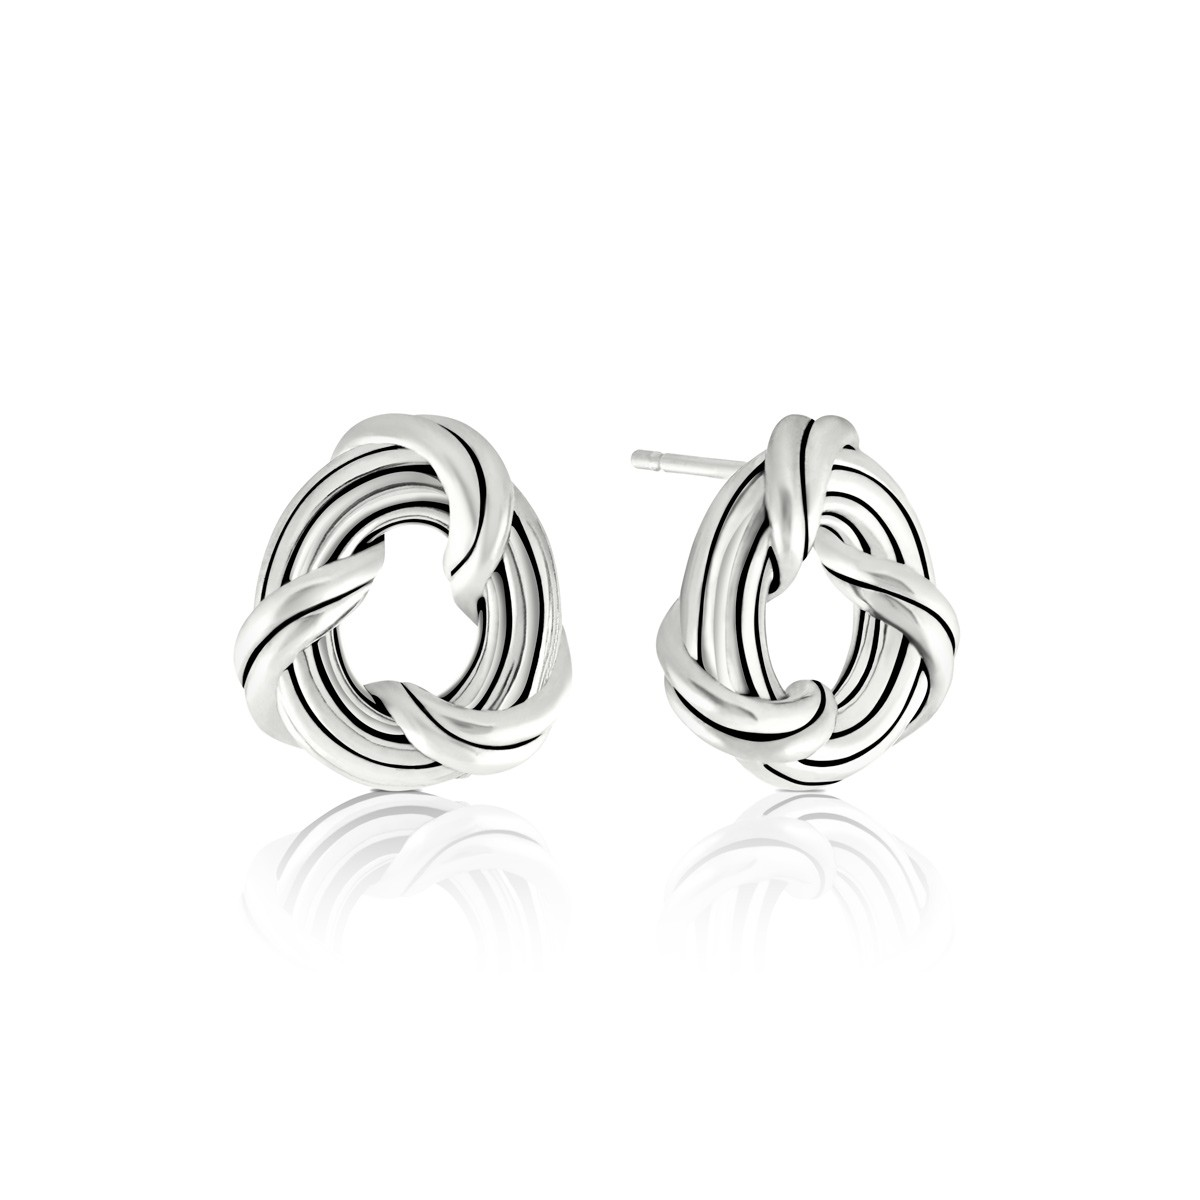 Signature Classic Oval Stud Earrings in sterling silver